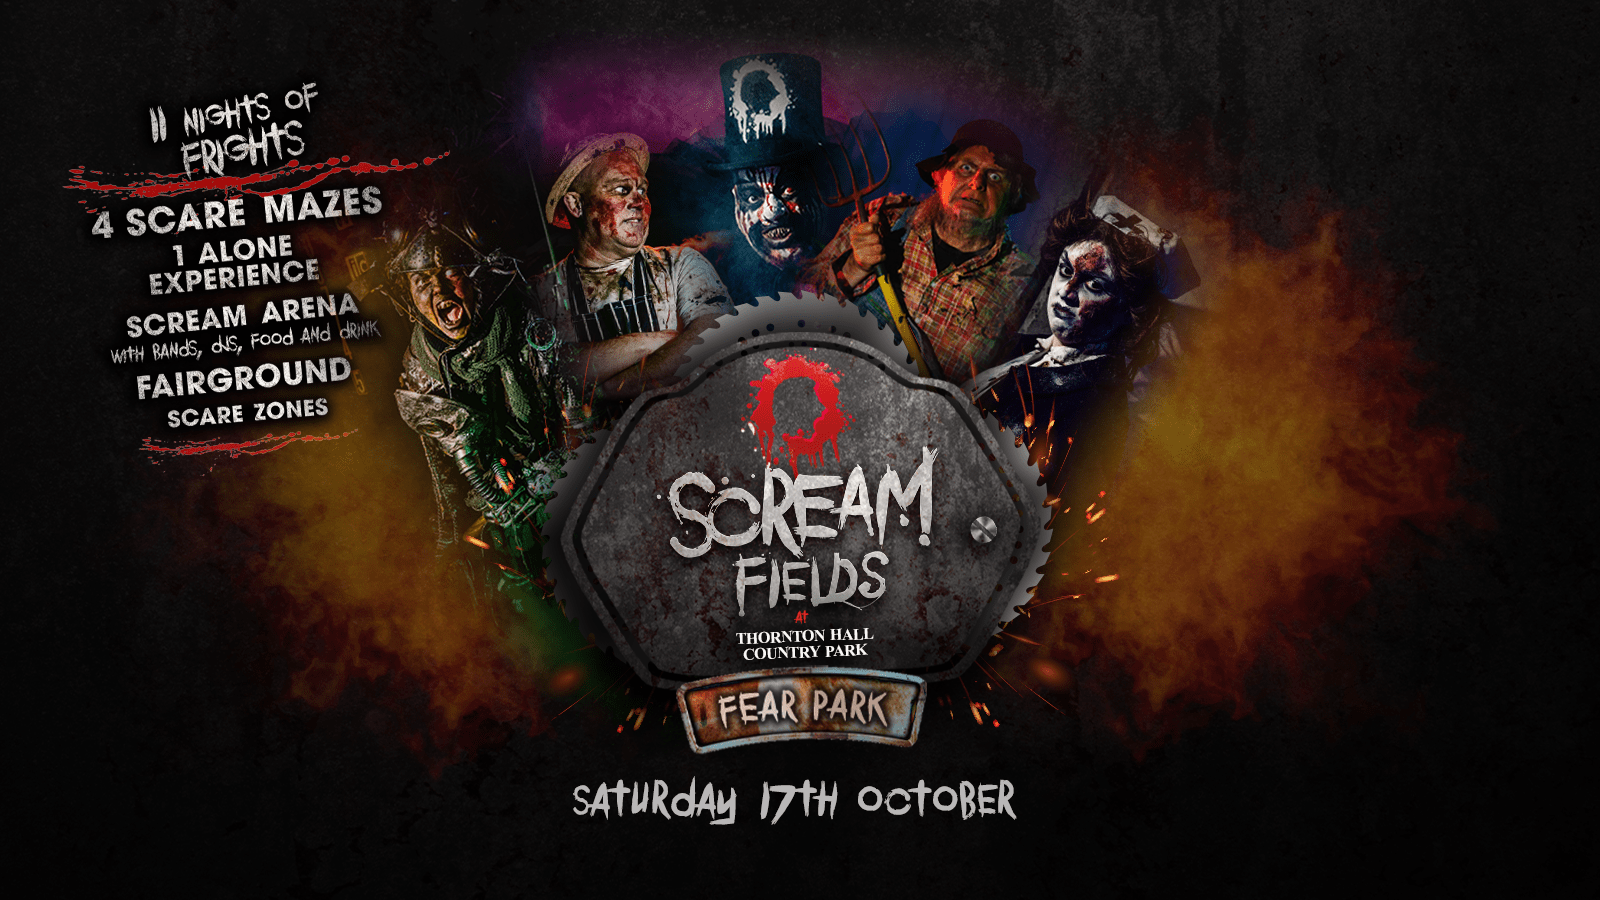 6.00PM – Screamfields: Saturday 17th October 2020